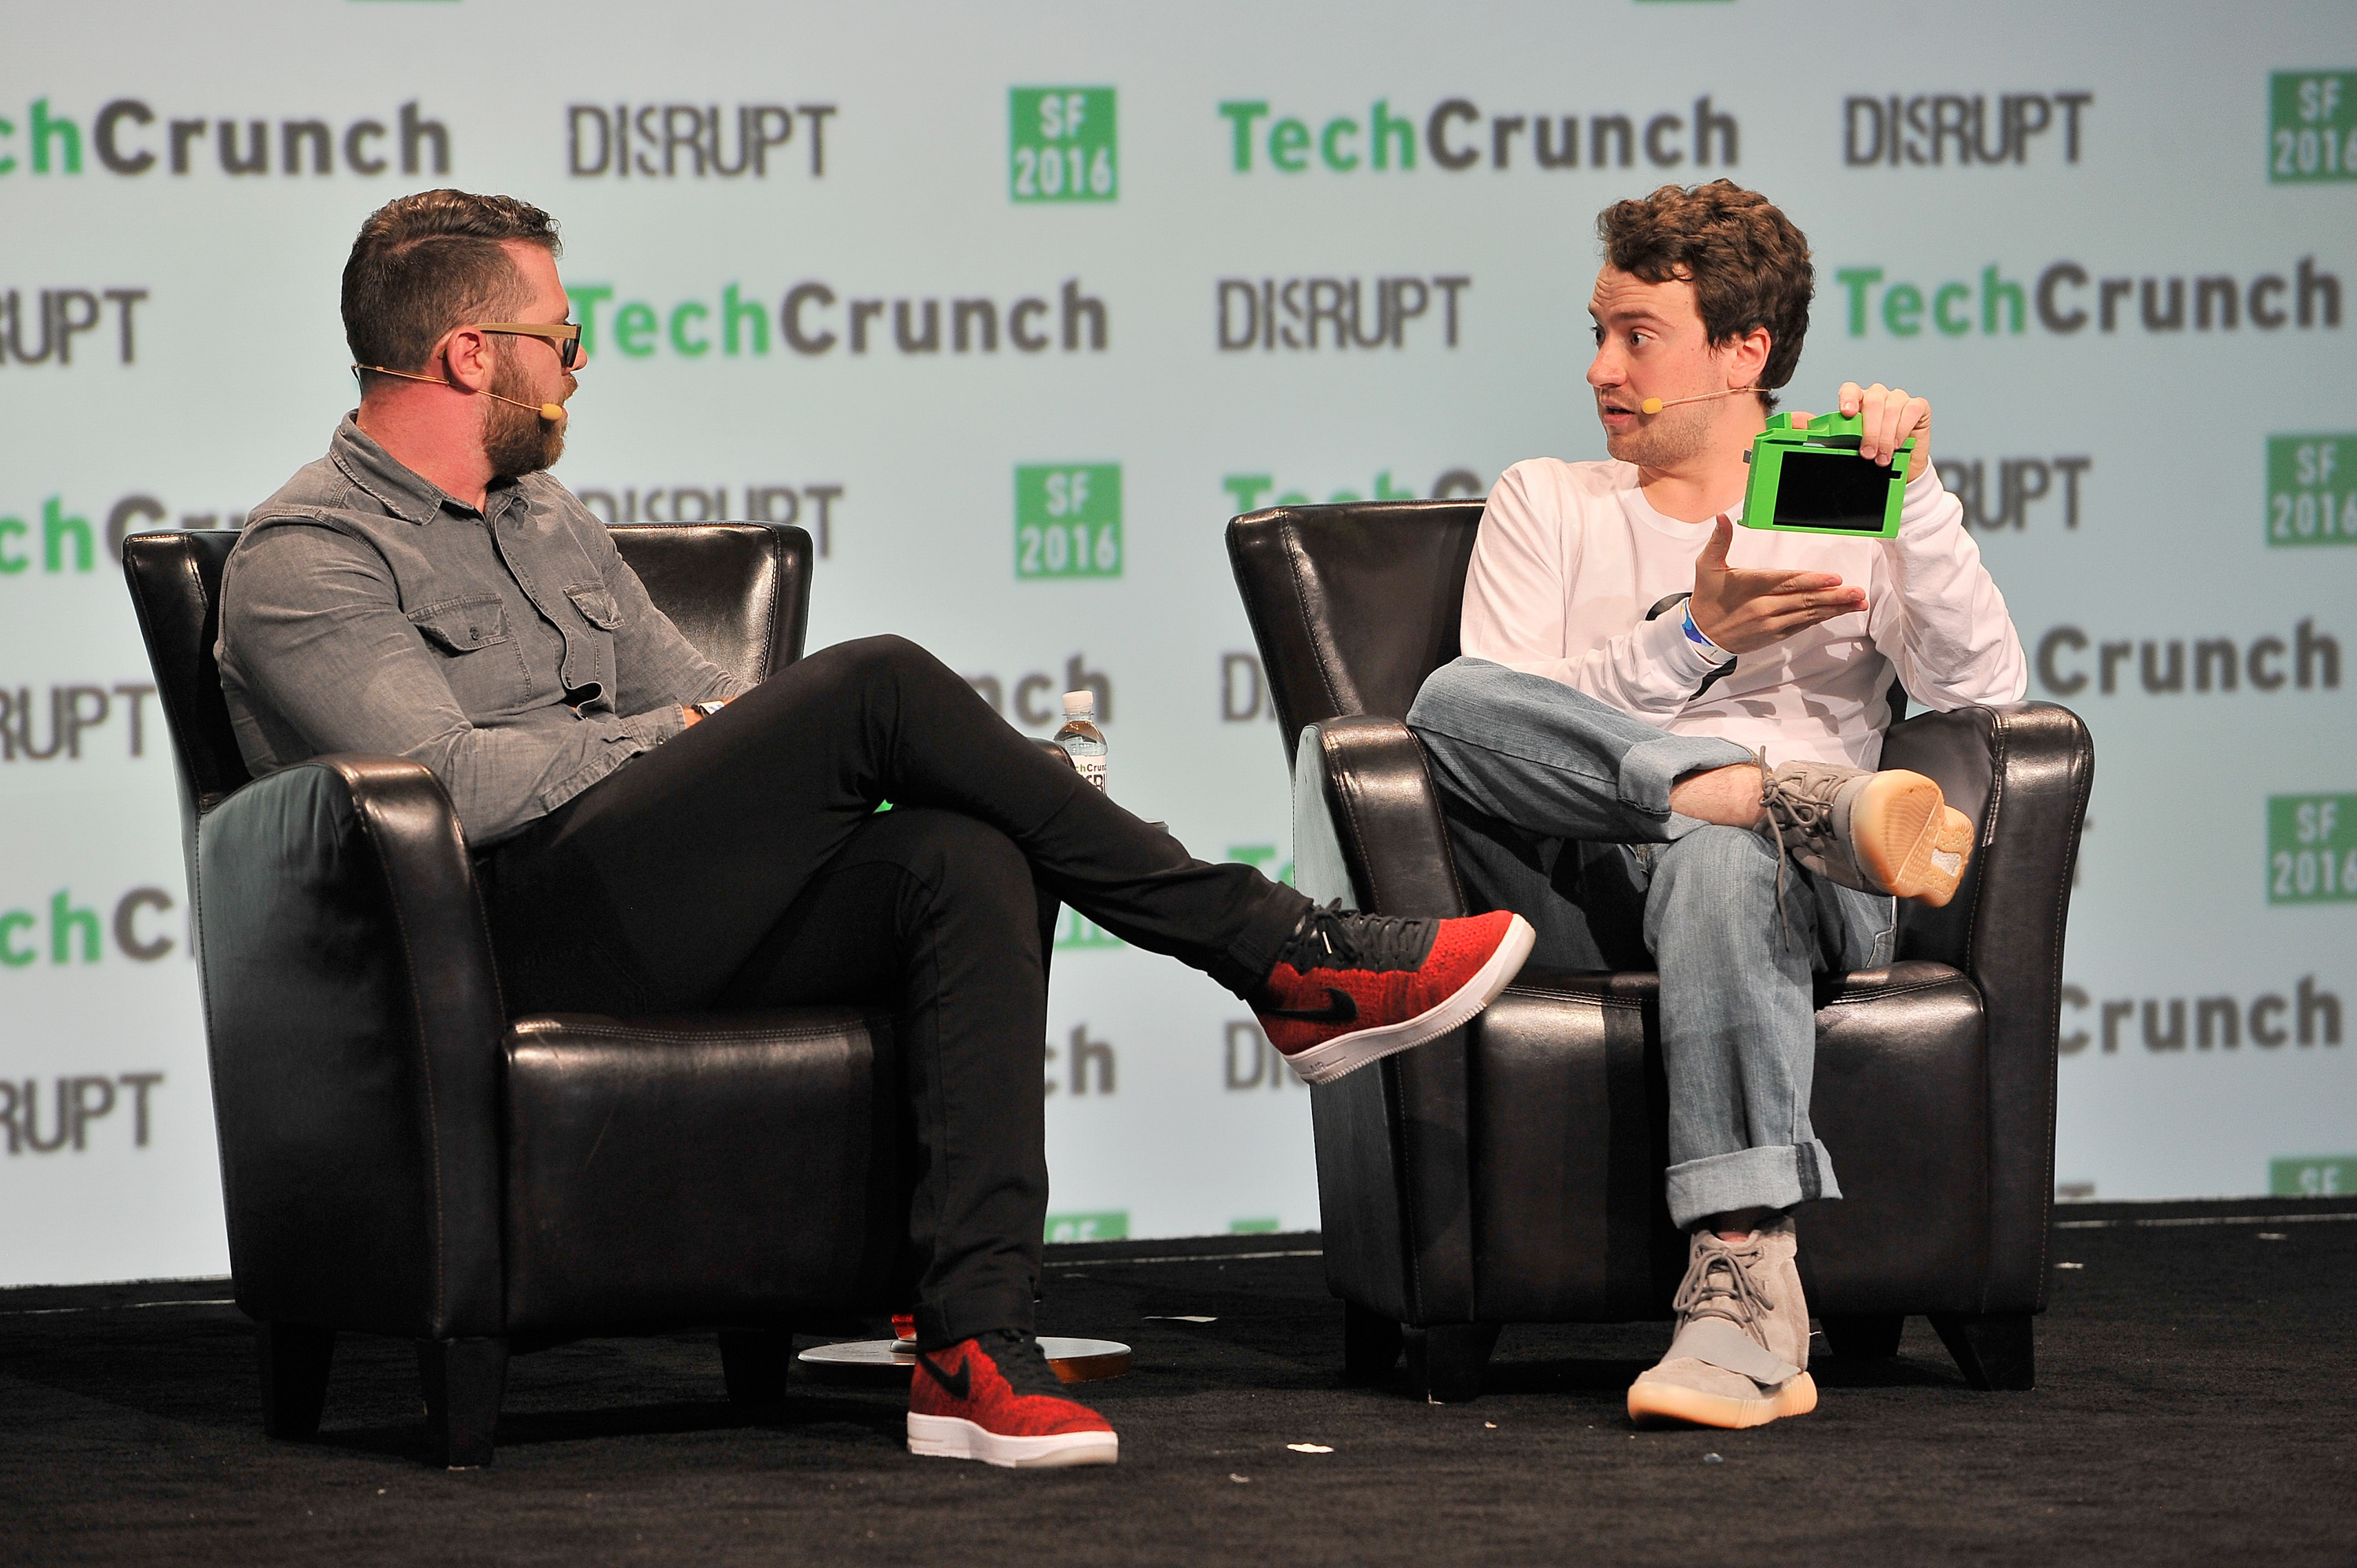 Moderator Darrell Etherington and CEO of Comma.ai George Hotz onstage during TechCrunch Disrupt SF 2016.